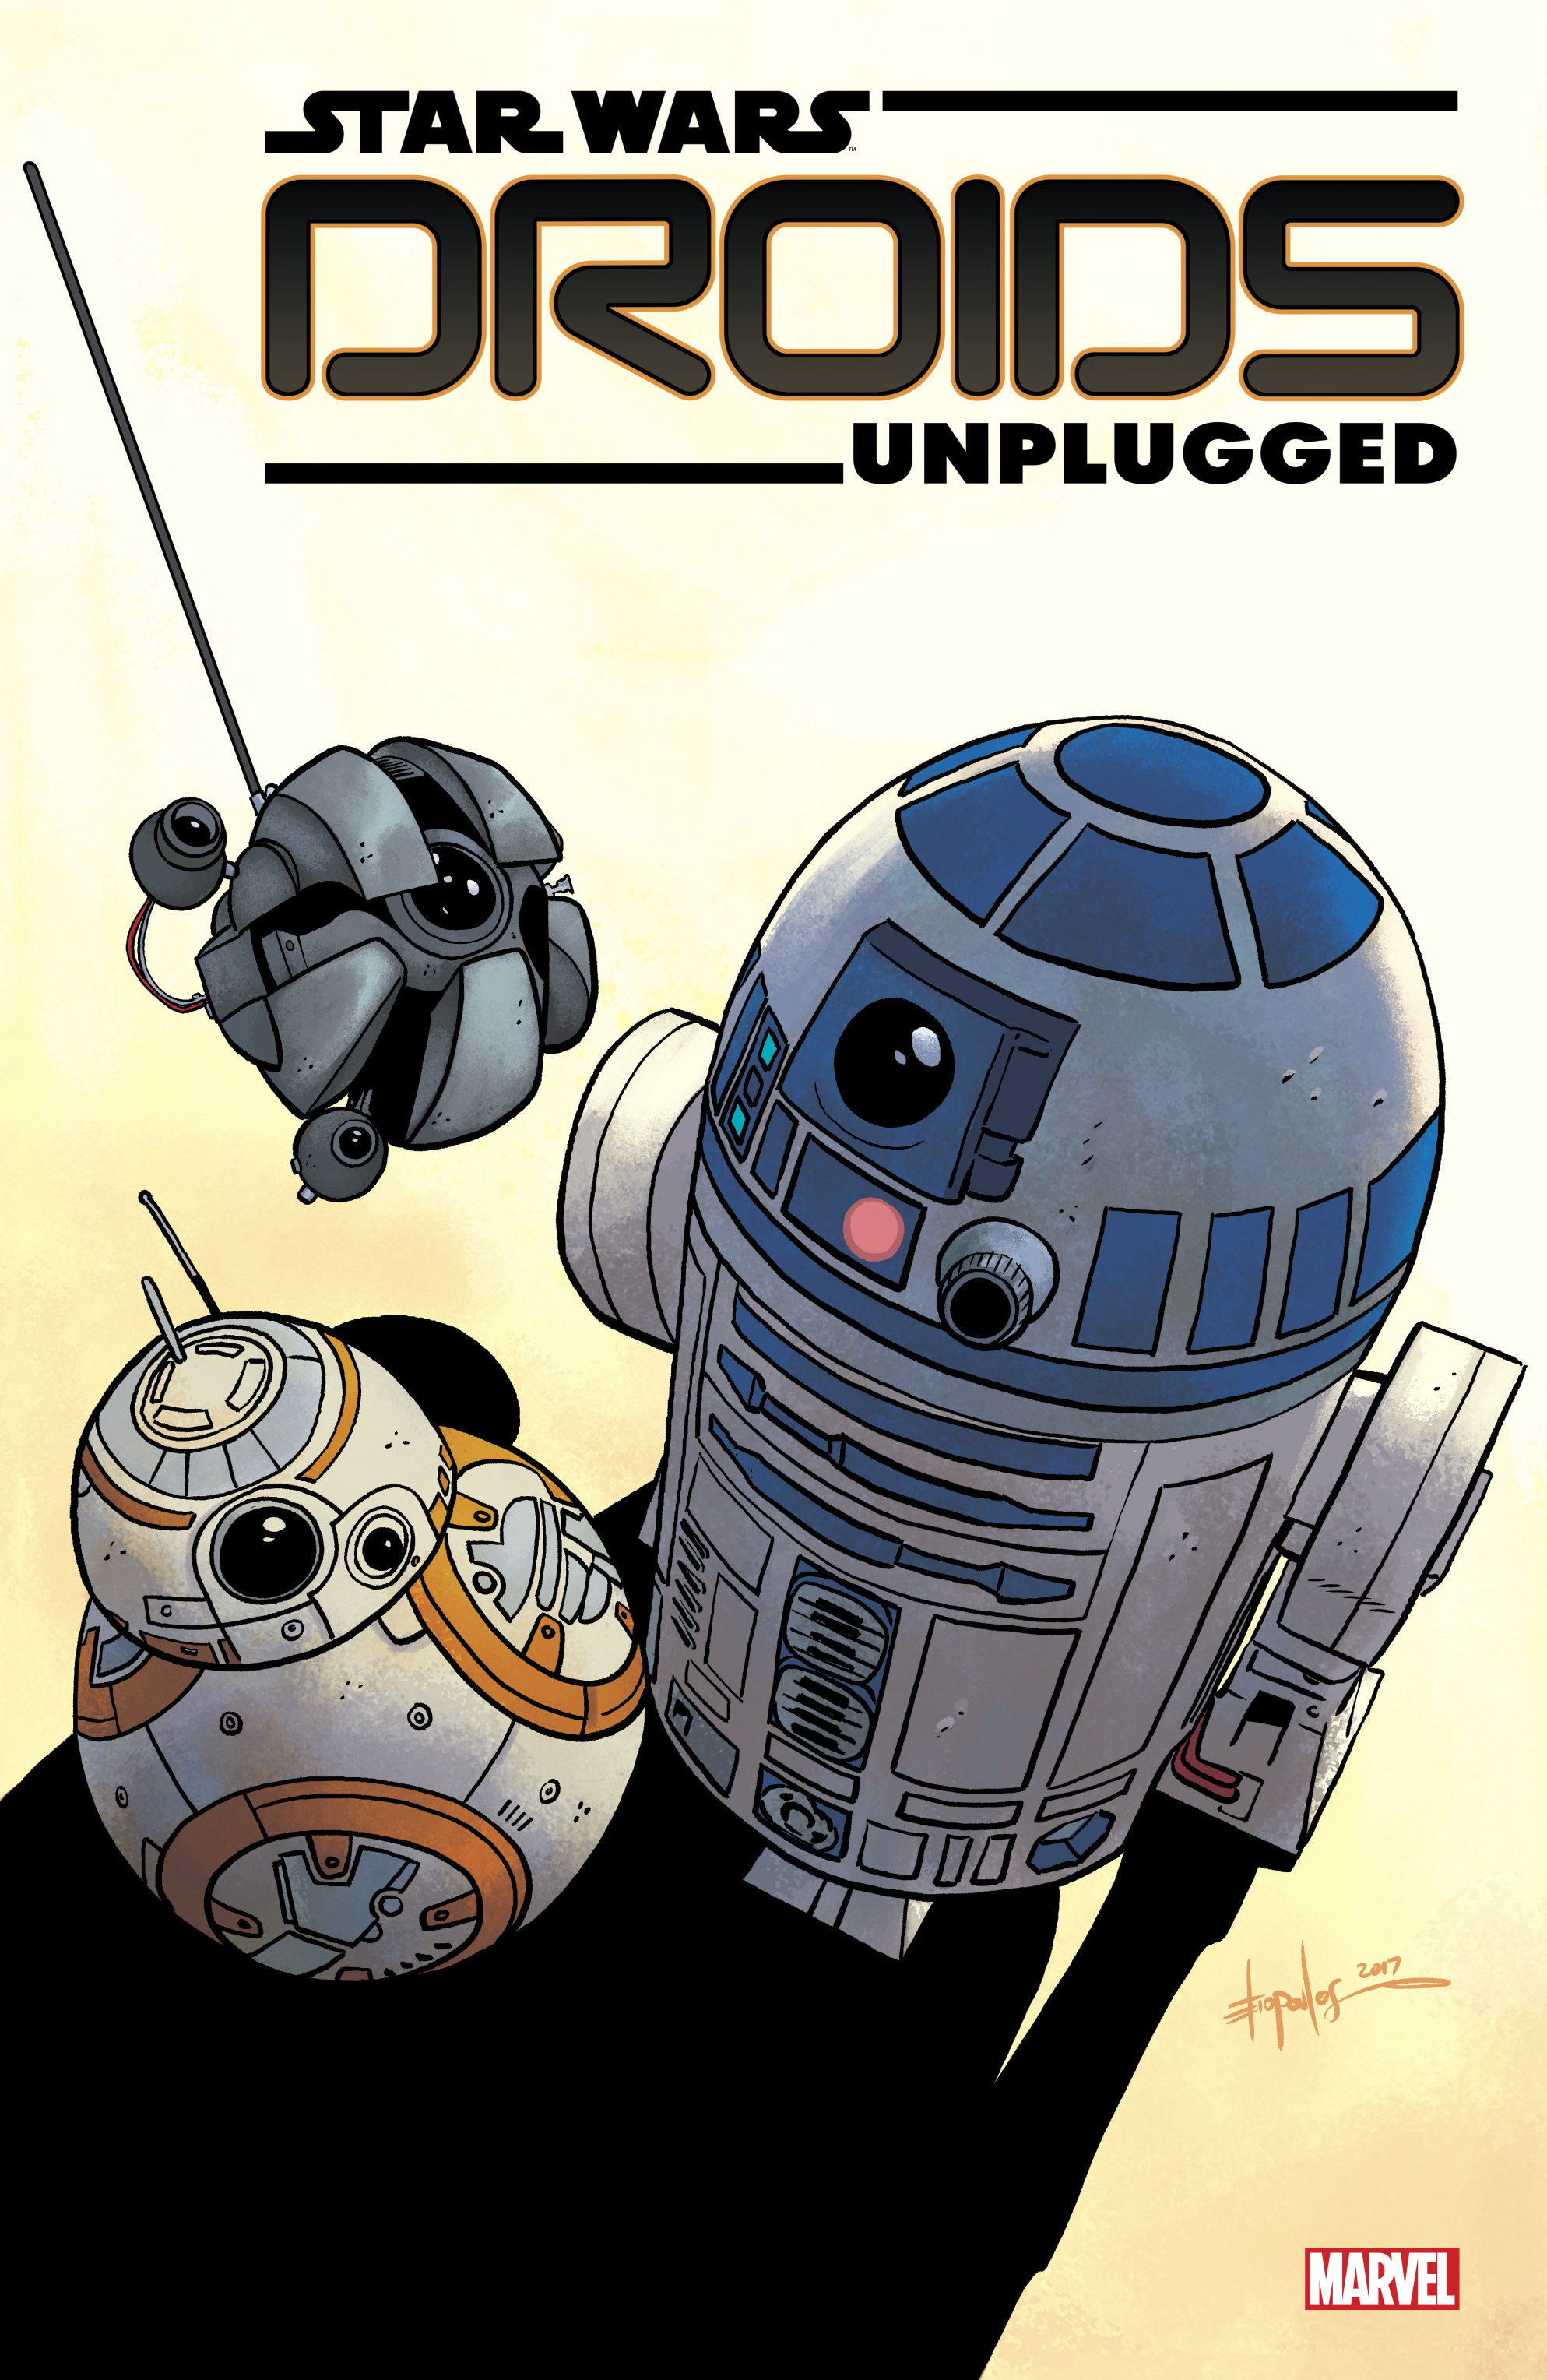 Logo design for  Star Wars: Droids Unplugged . Content copyright Marvel Entertainment, 2017.